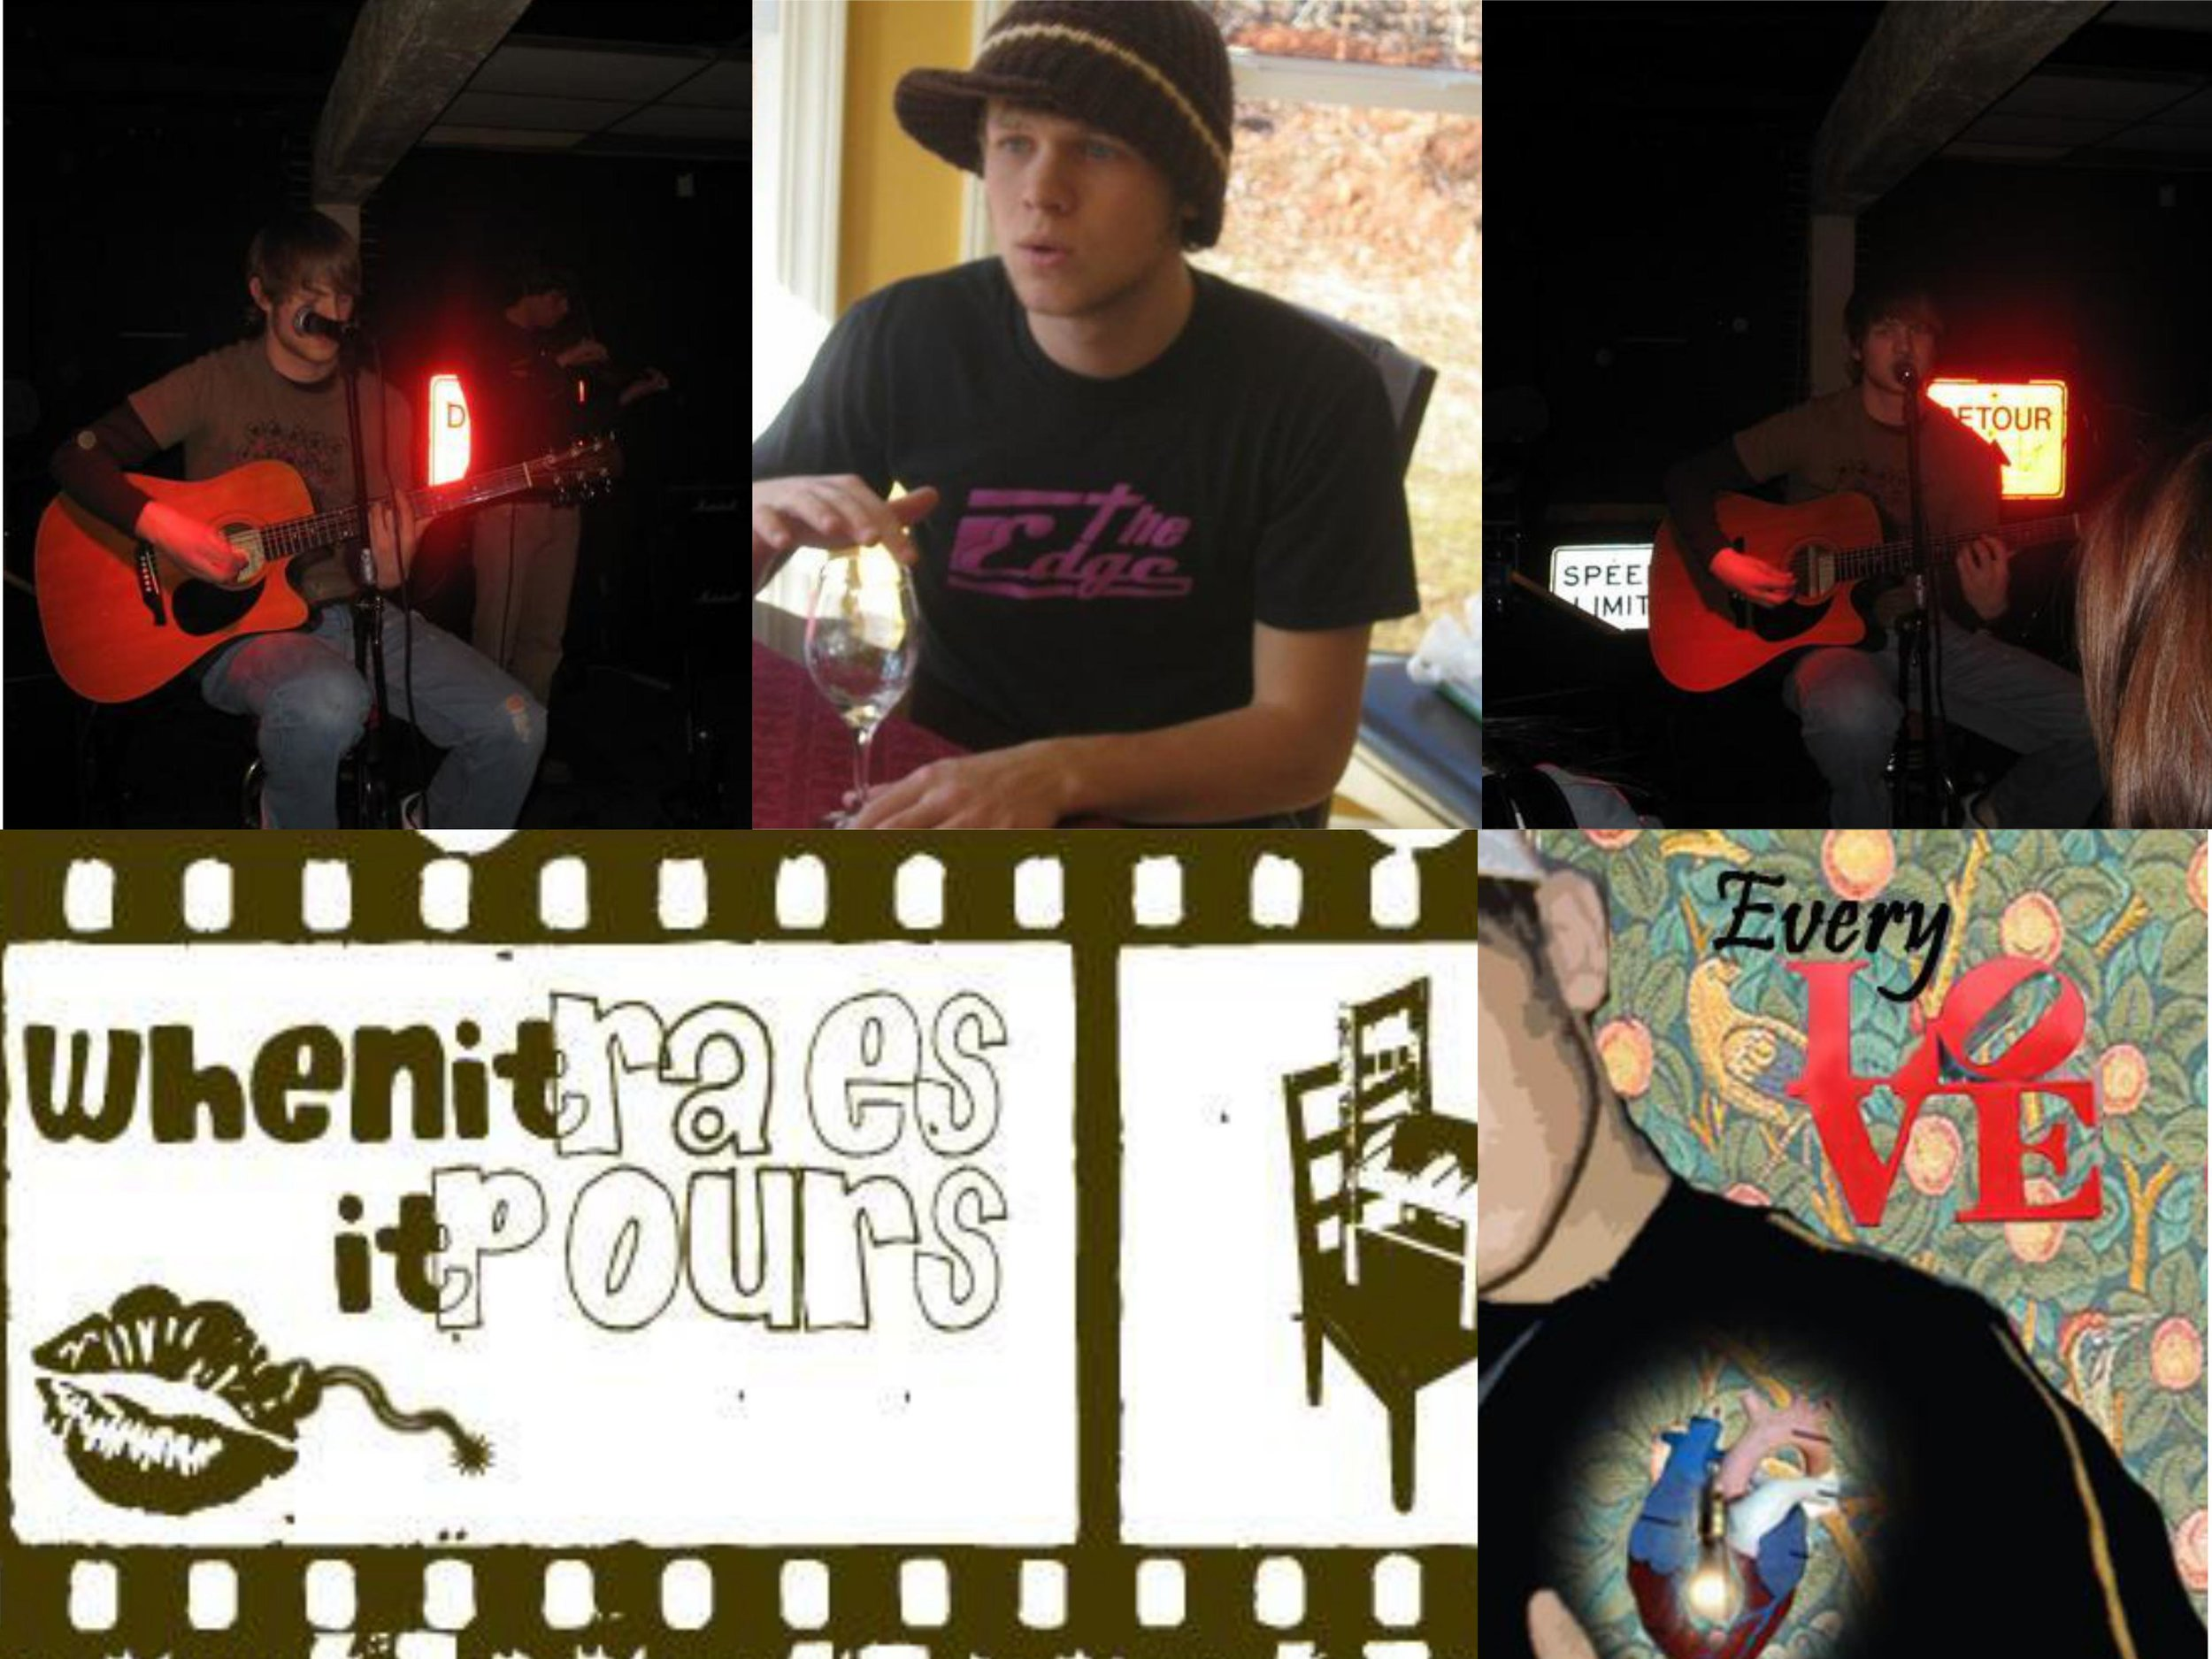 Cringe Collage of live shots, being an idiot, and weird promo material.